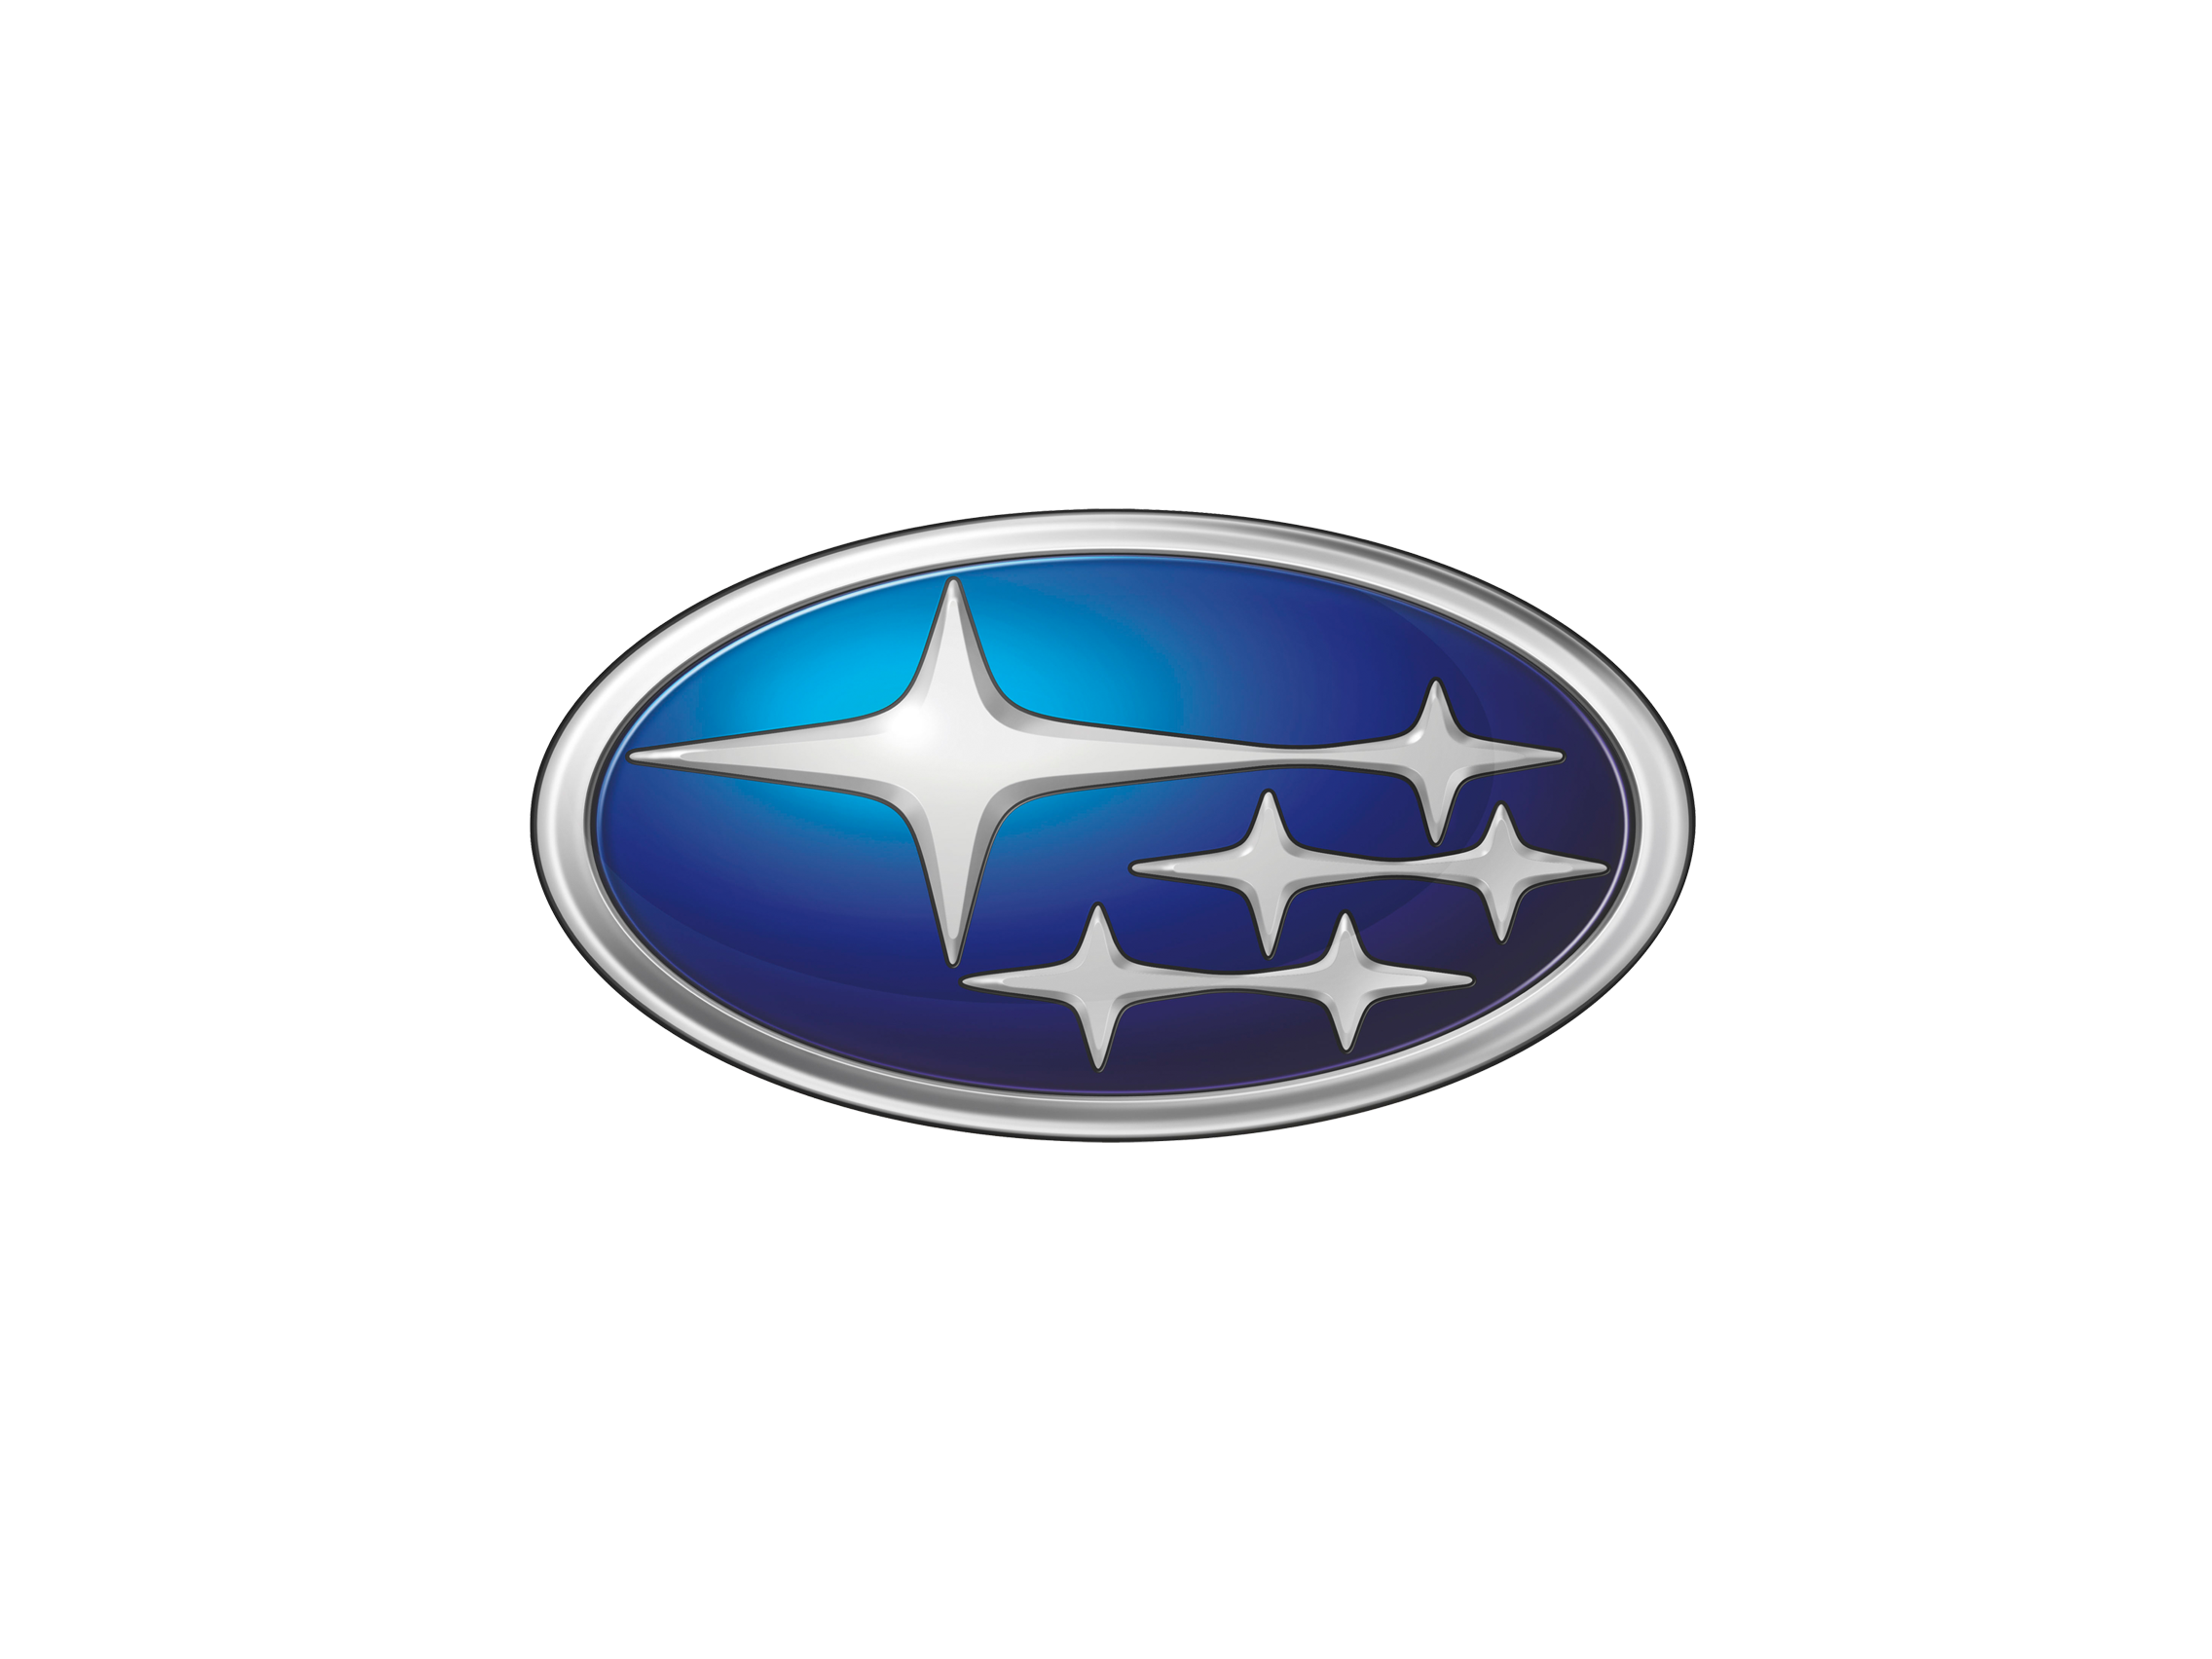 Subaru logo png. Axl wheels and axles